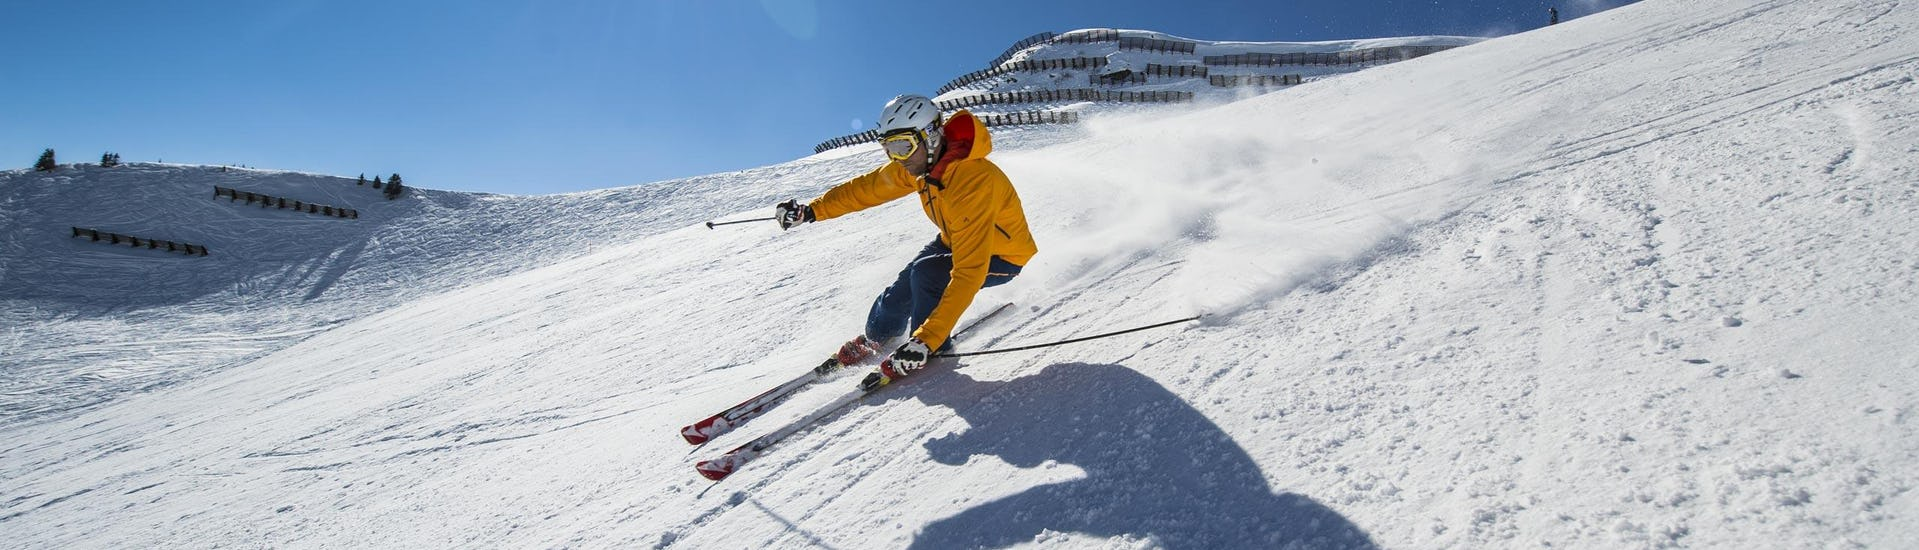 Adult Private Ski Lessons - All Levels - Full day: A skier is skiing down a sunny ski slope while participating in an activity offered by Summit Ski & Snowboard School.